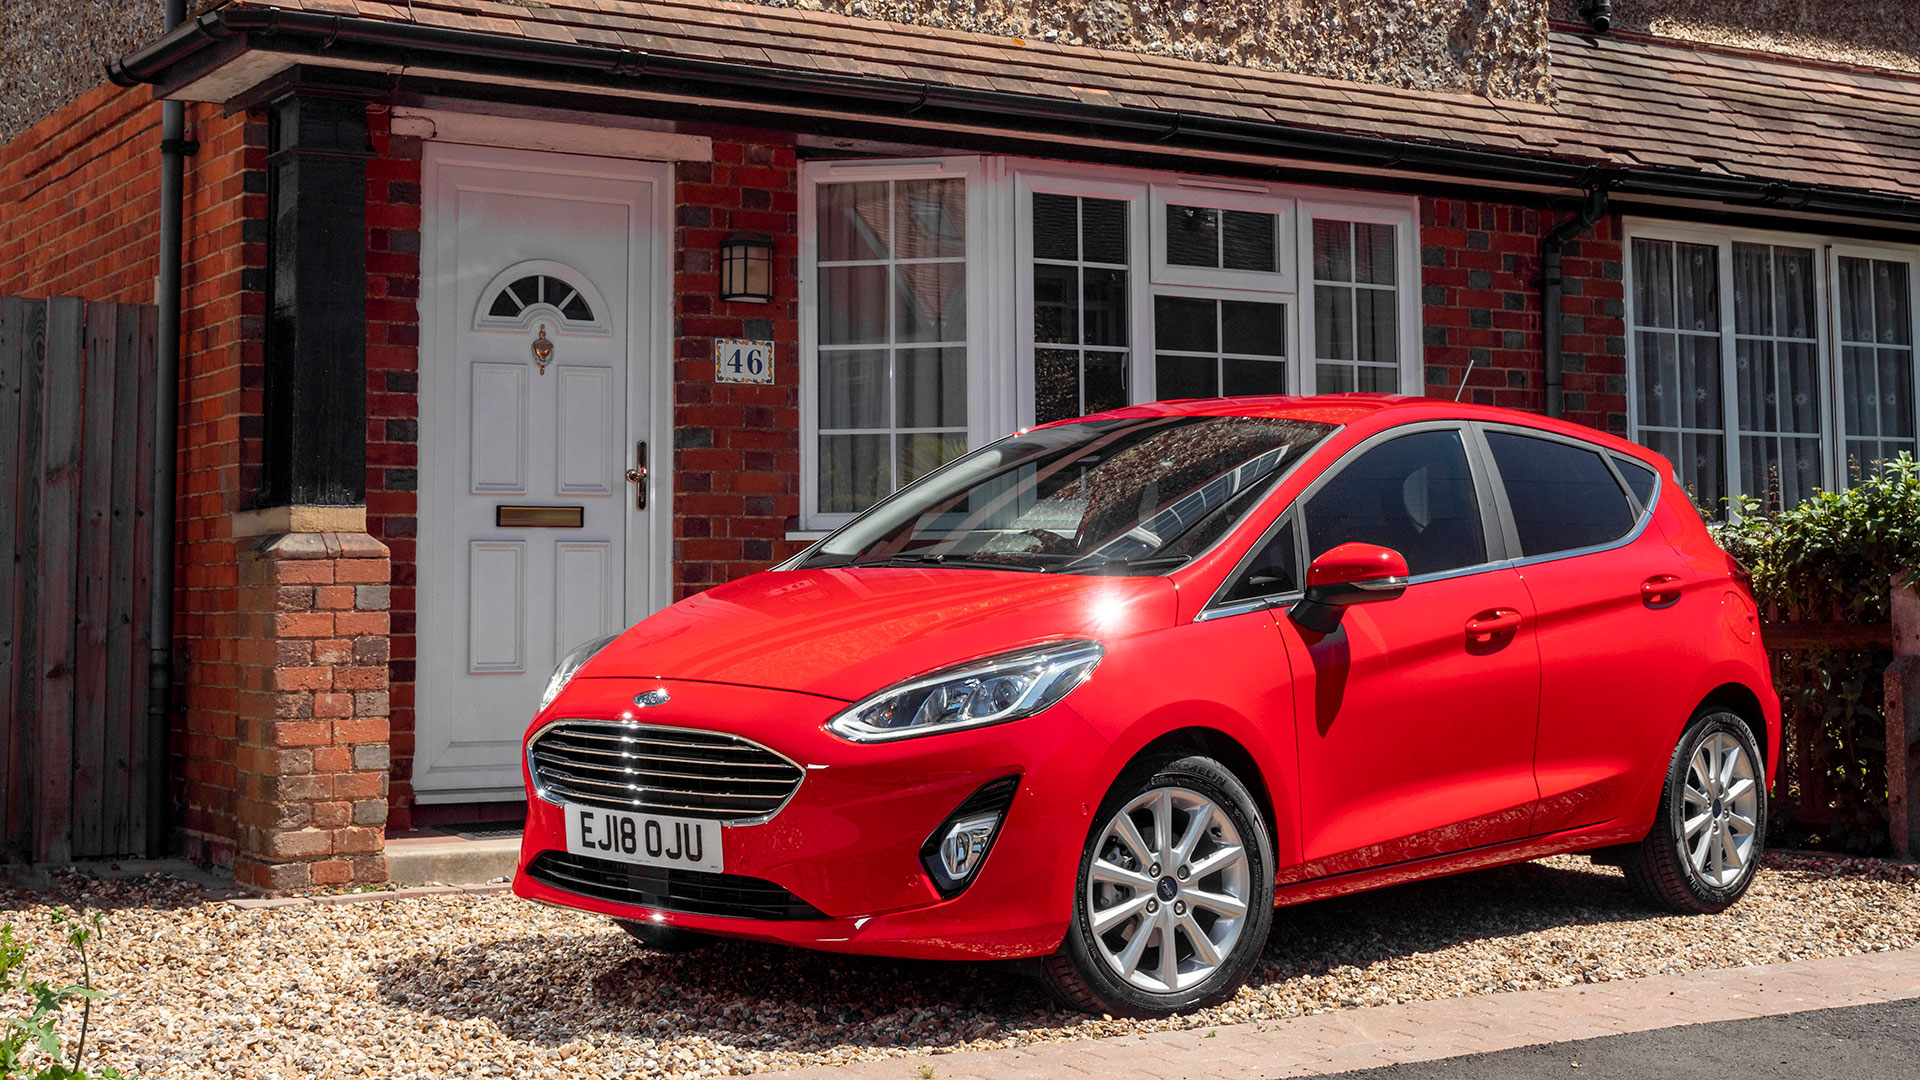 New & Used Ford Fiesta cars for sale | Auto Trader UK